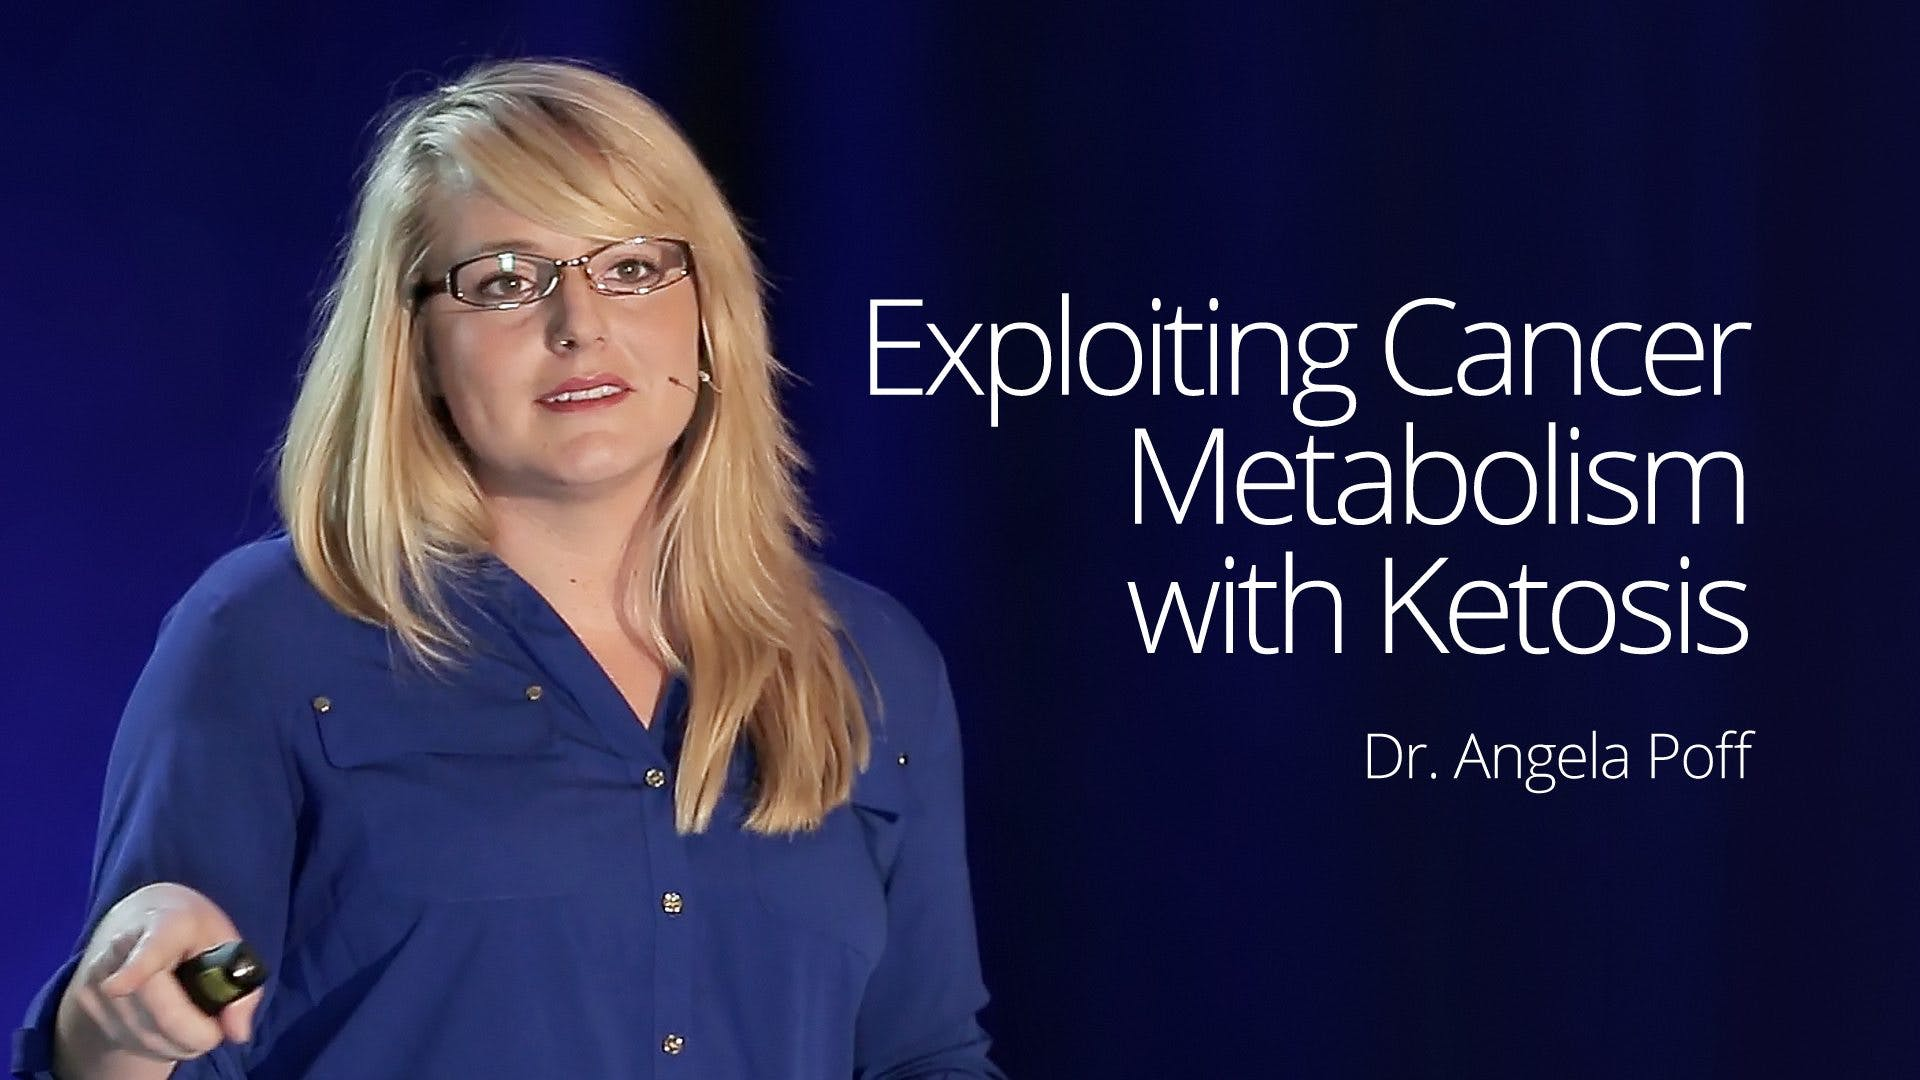 Exploiting cancer metabolism with ketosis